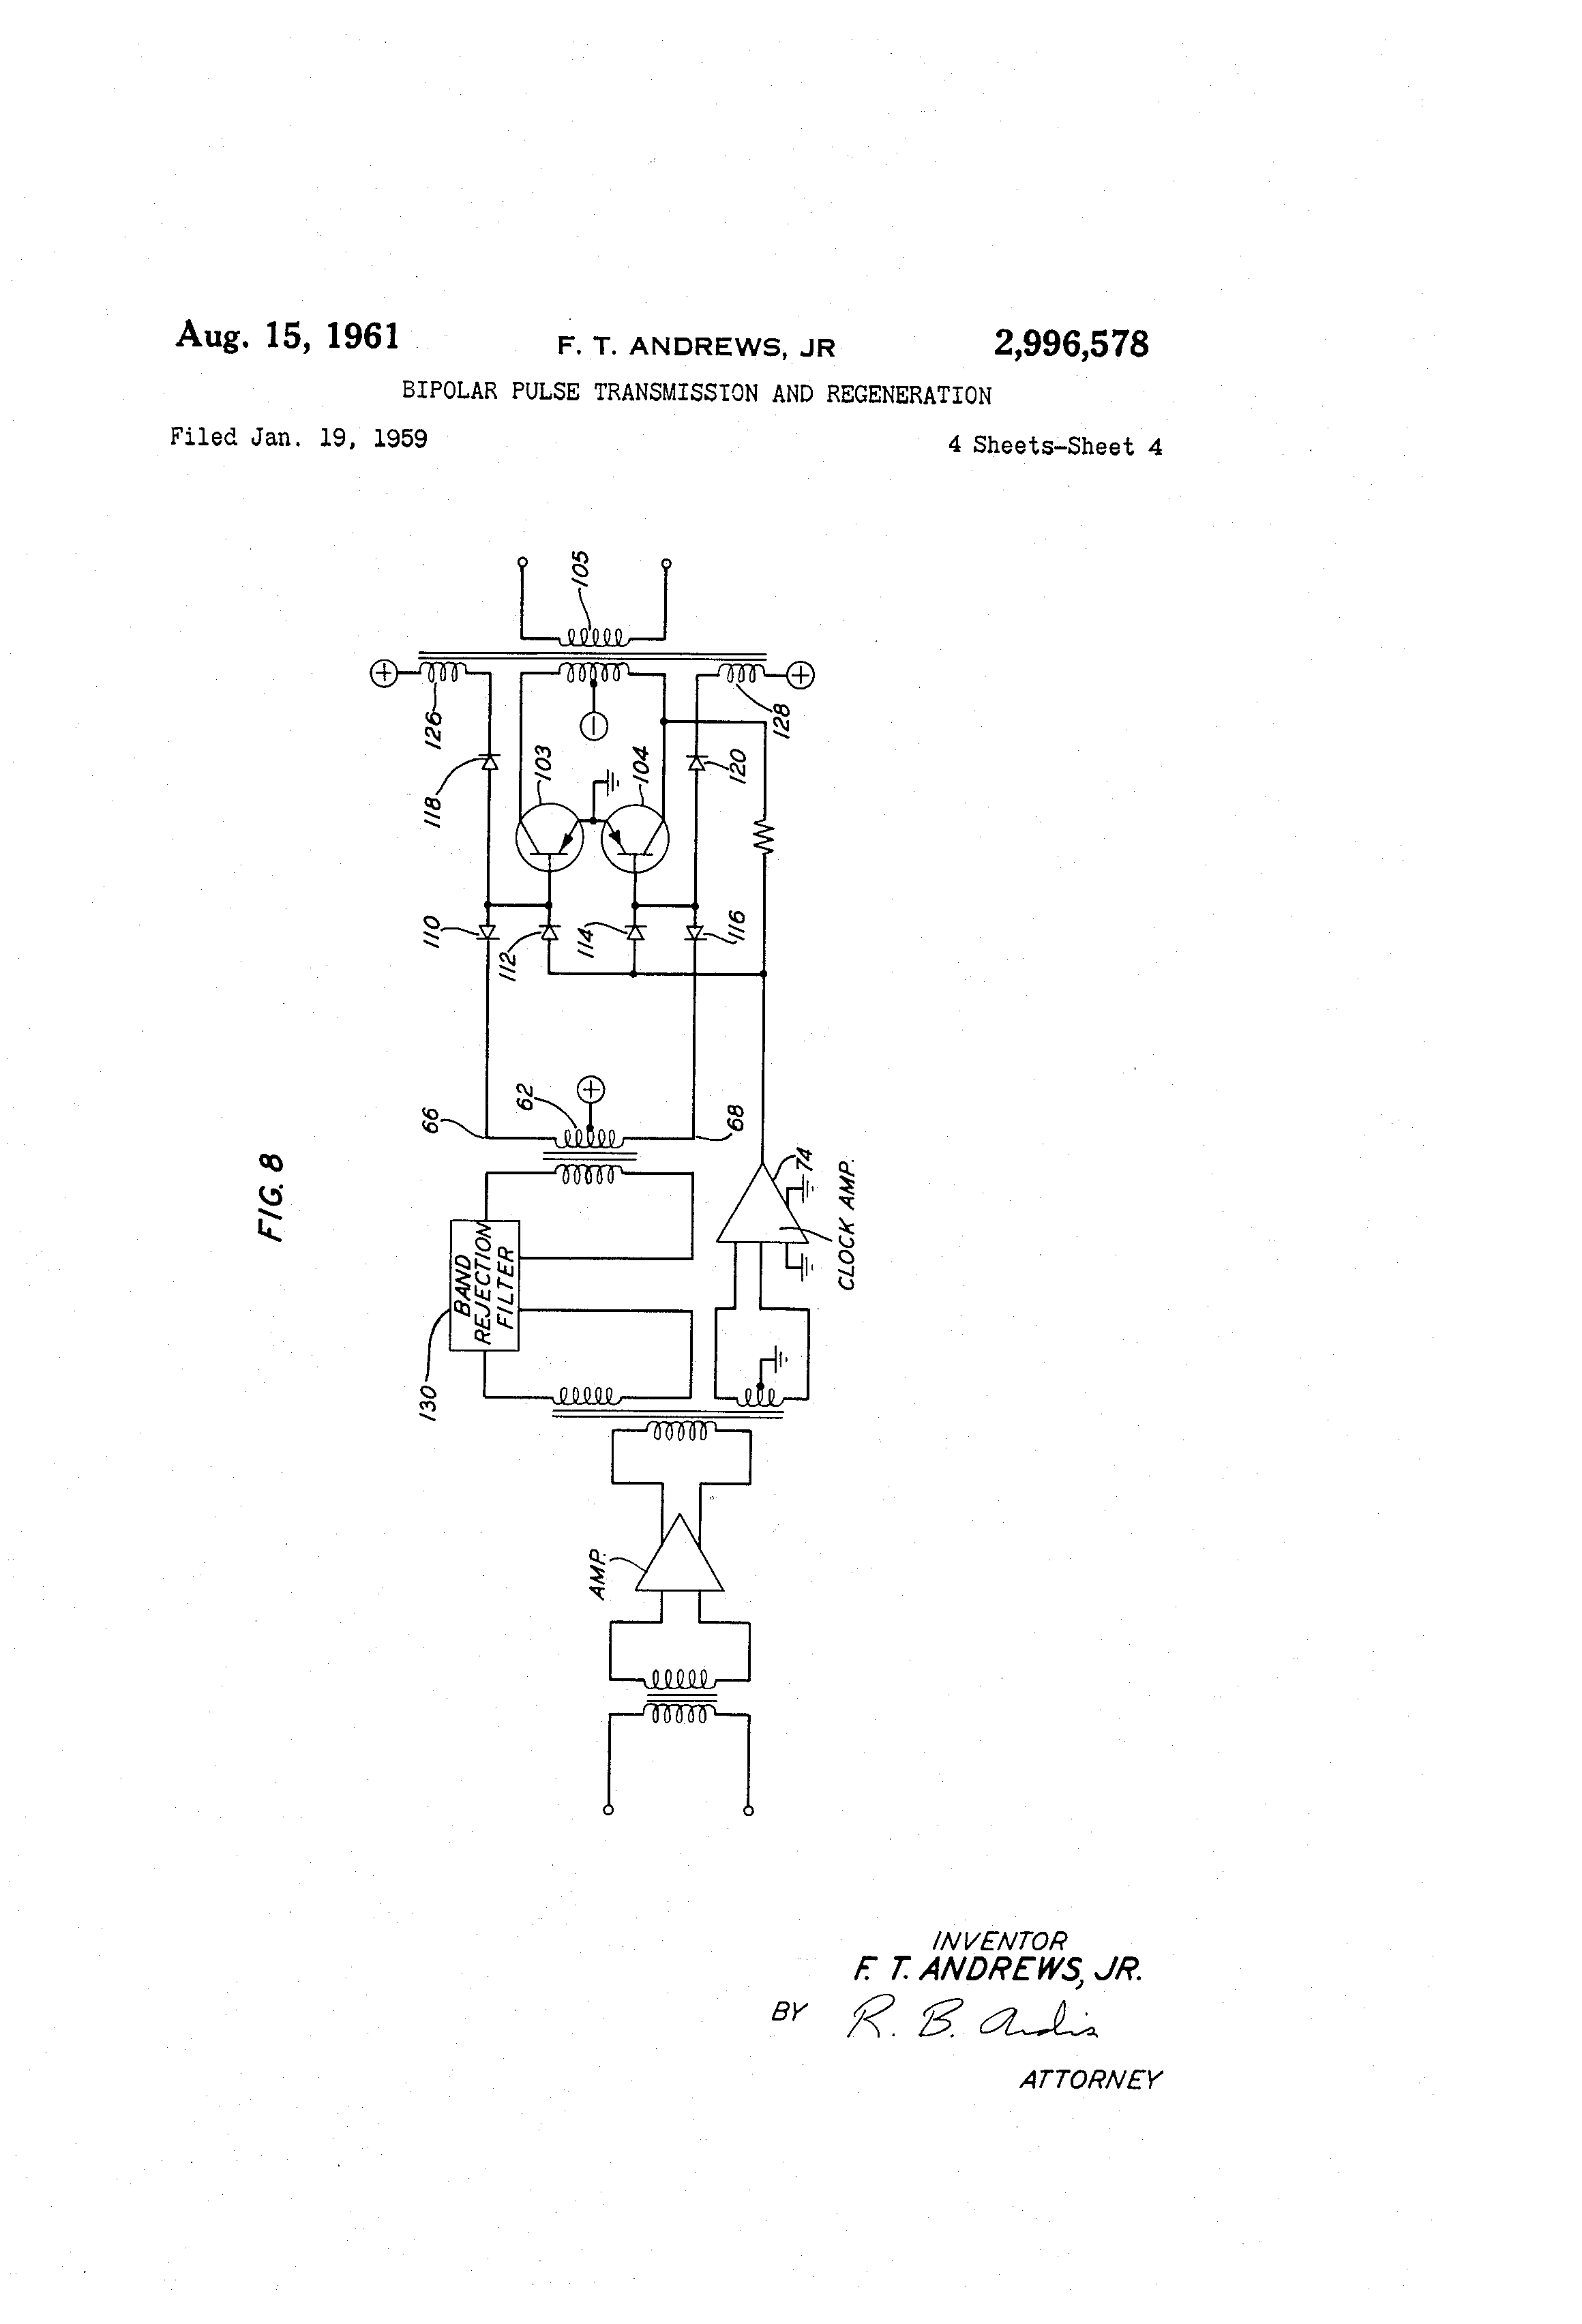 Us2996578 Bipolar Pulse Transmission And Good Pix For Band Reject Filter Circuit Patent Drawing